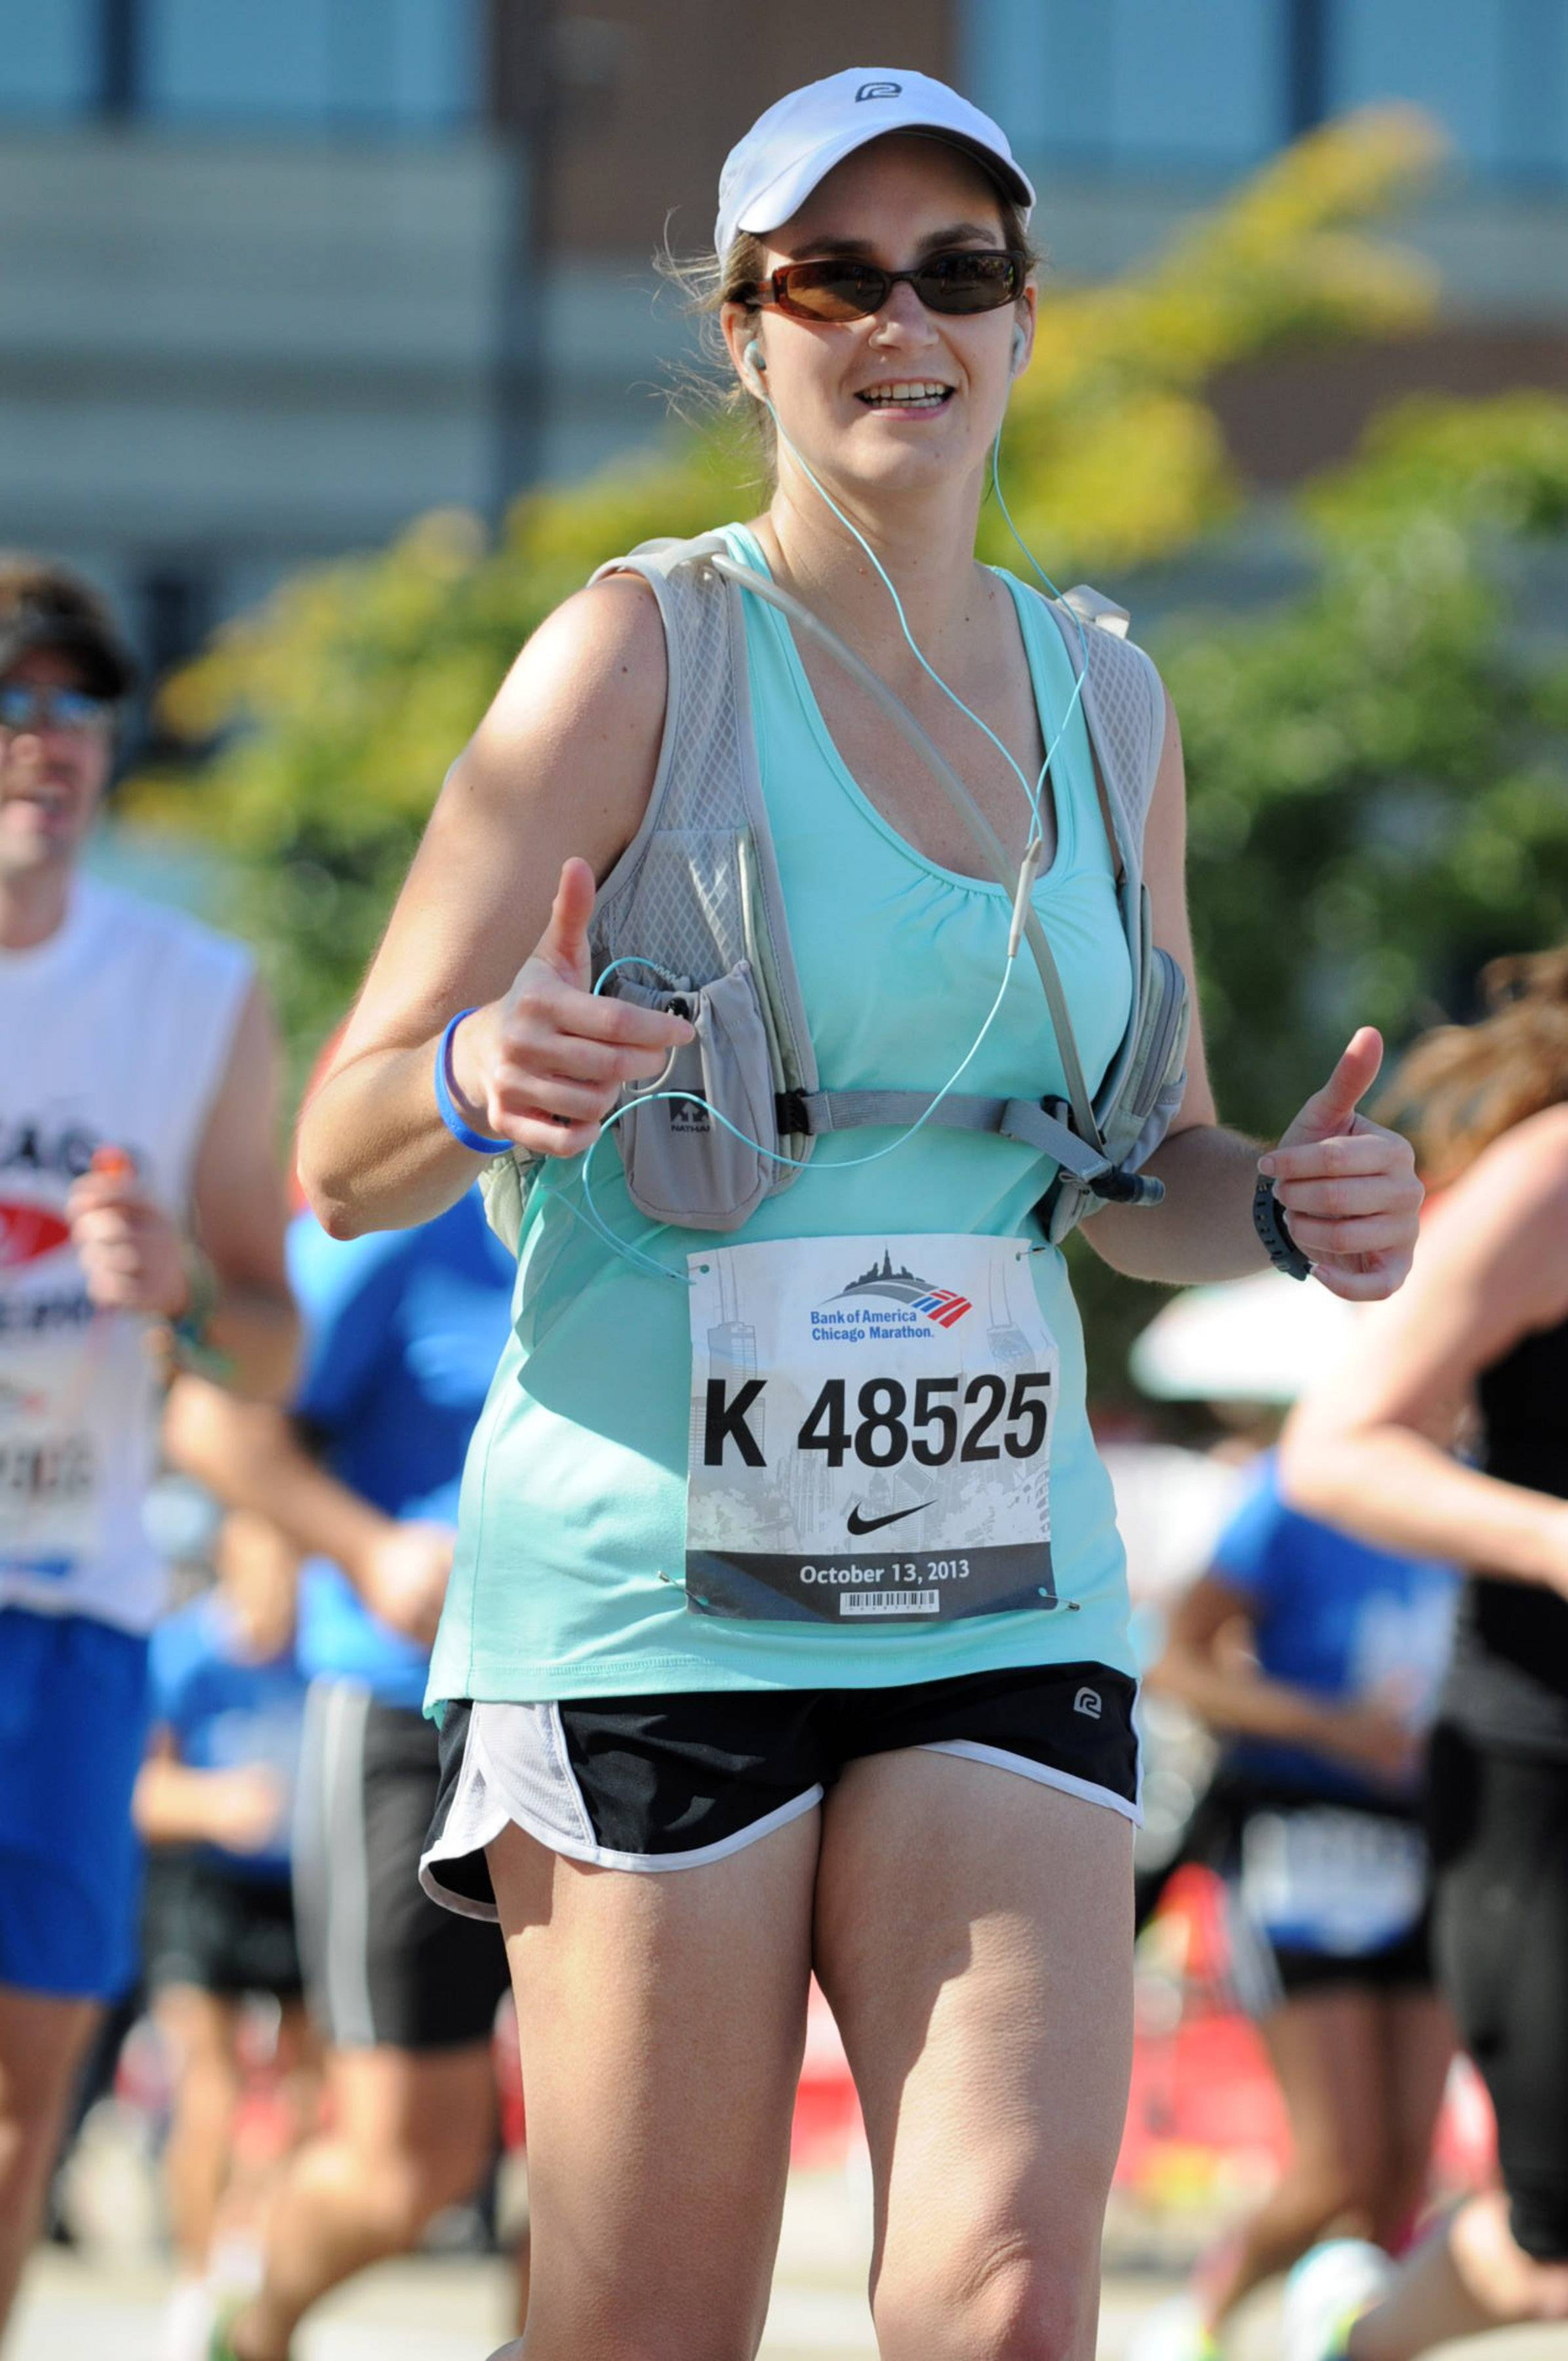 Nicole Wojnarowski, a 1993 graduate of then St. Charles High School, turned 40 five months ago. To make note of that achievement, she set a goal to run in 40 races while she is 40 years old. The Chicago Marathon, if she completes it, will be number 21.